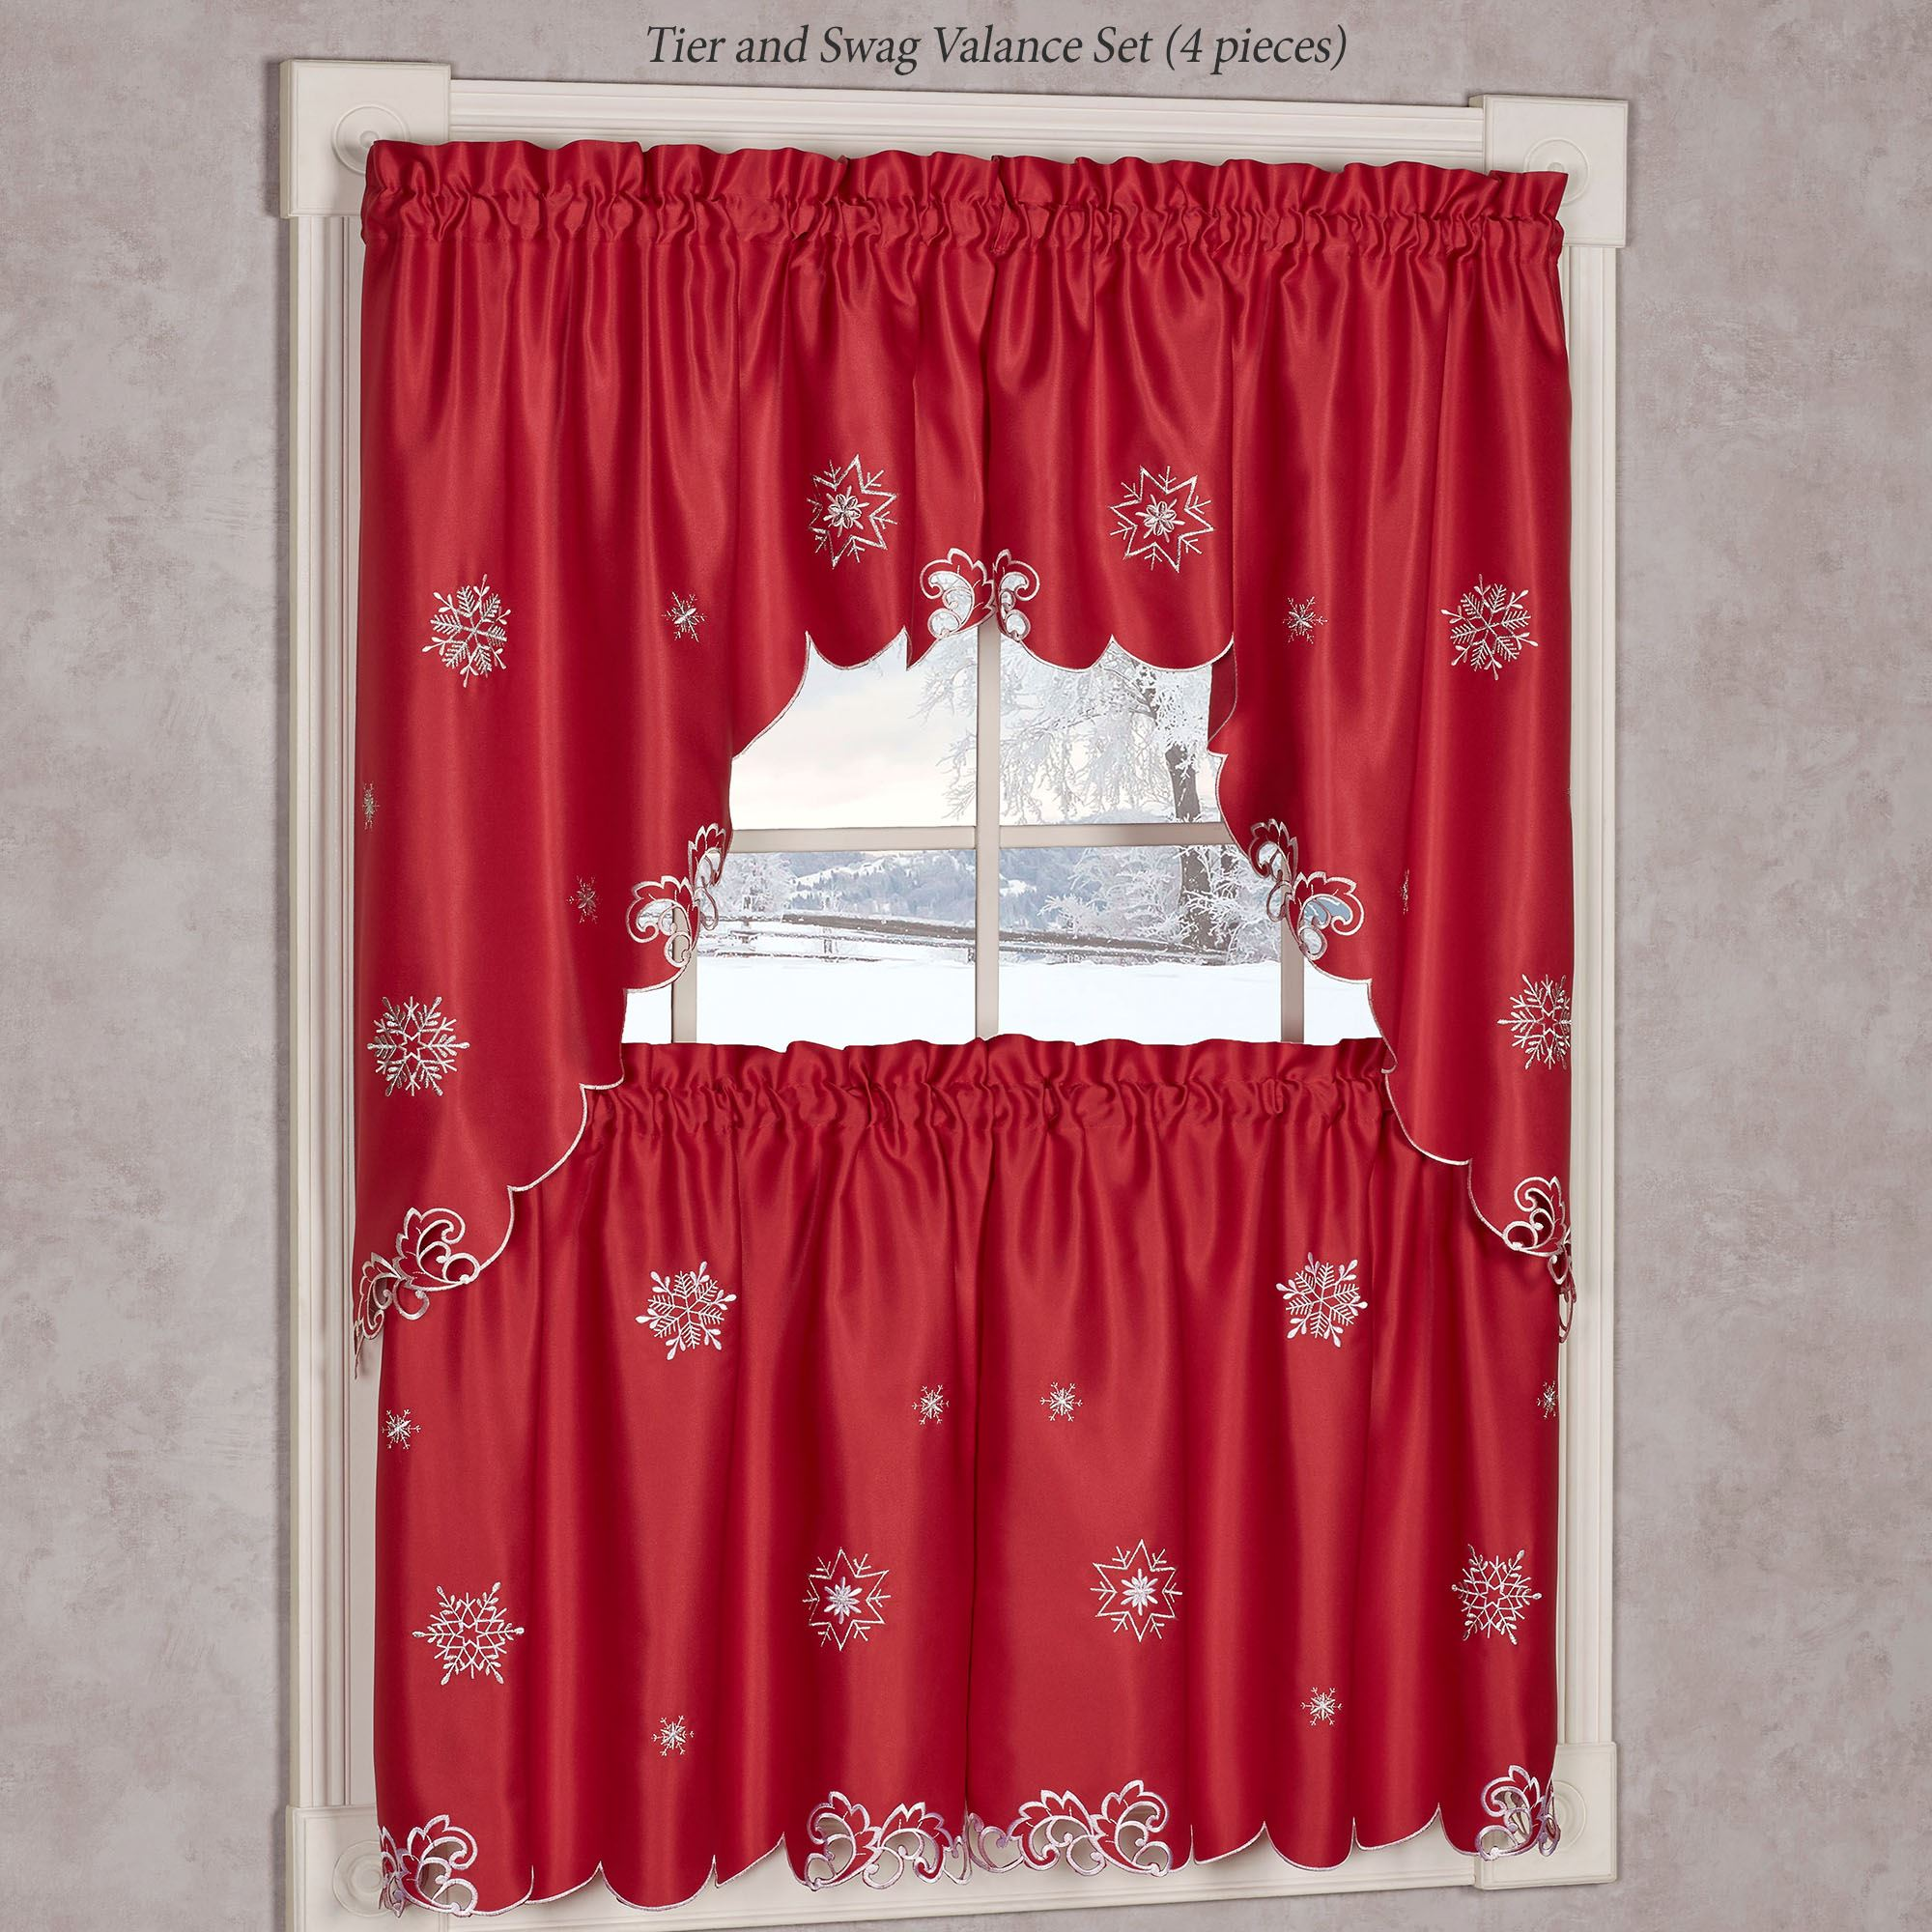 100 window valances touch of class grandeur toga swag valanc